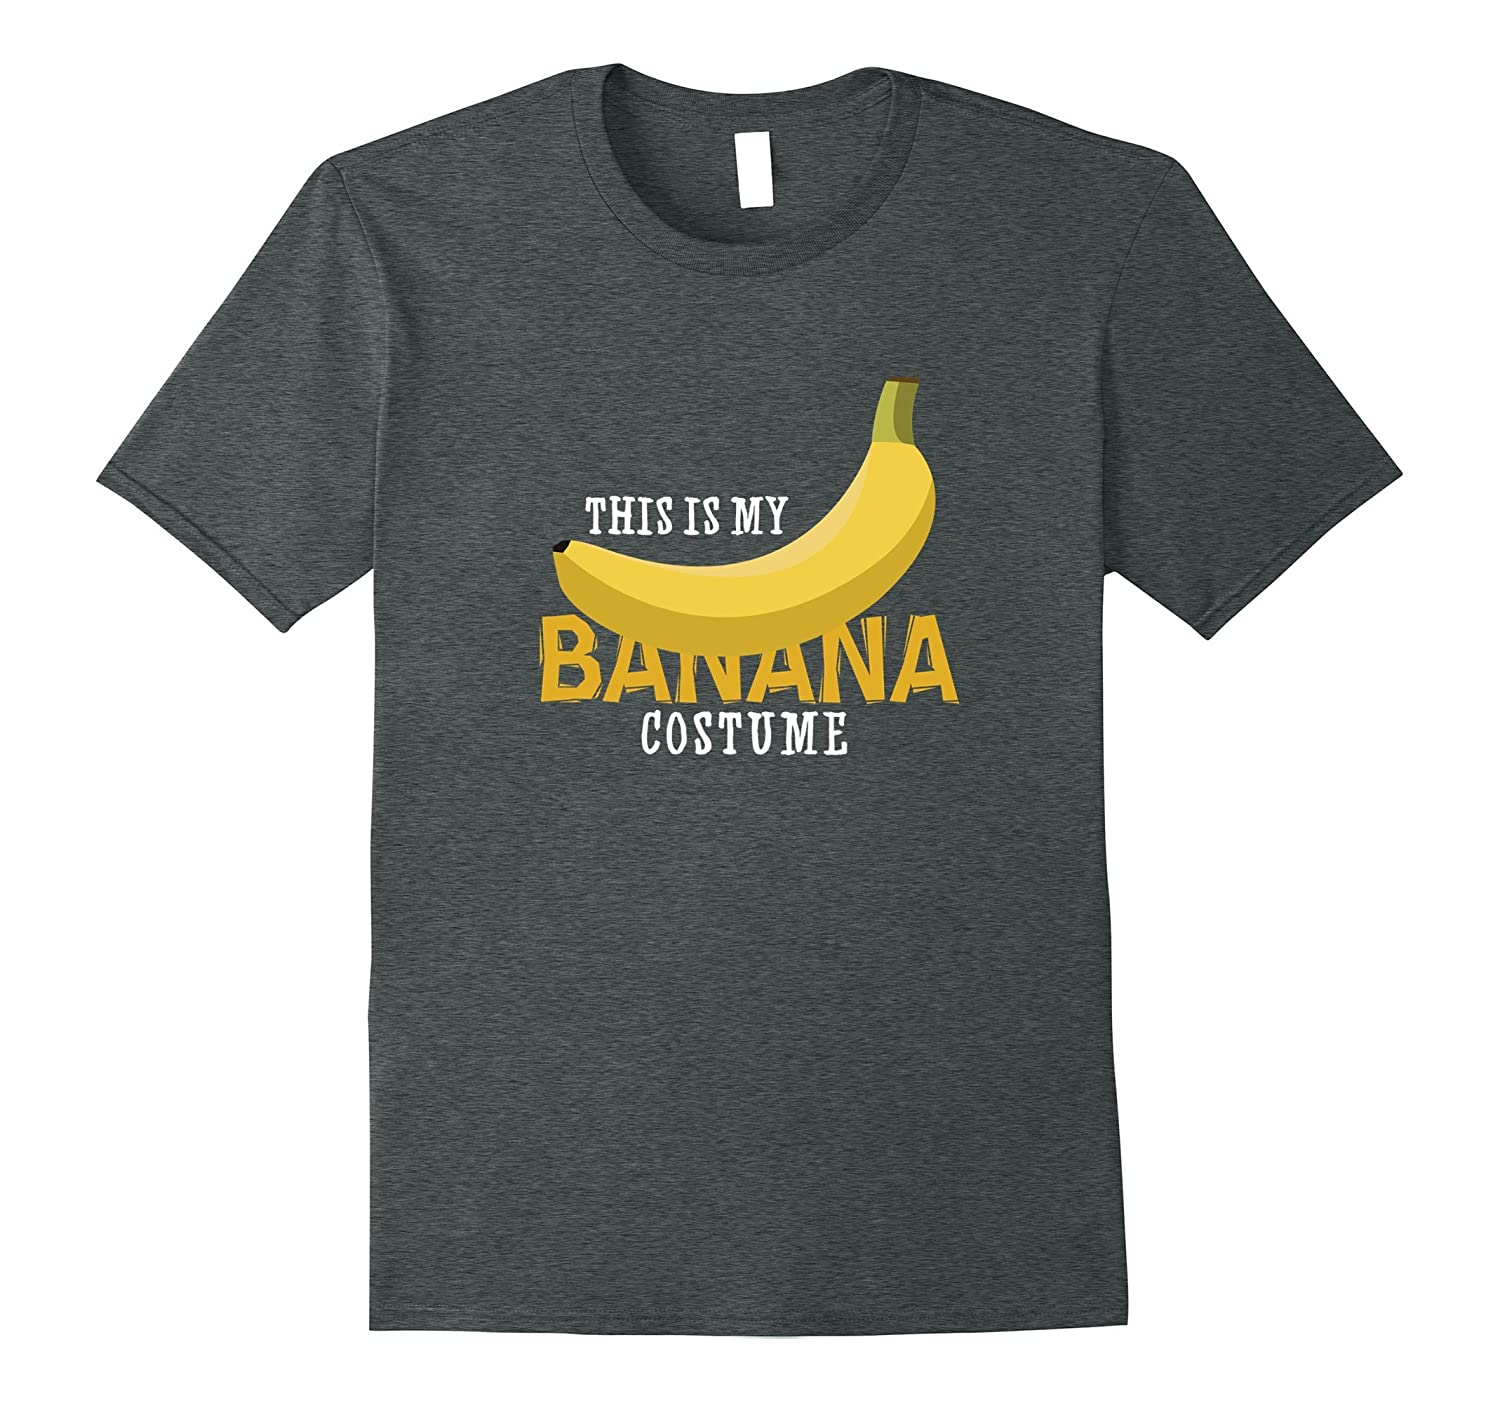 This Is My Banana Costume - Easy Halloween Costume Shirt-ANZ  sc 1 st  Anztshirt & This Is My Banana Costume - Easy Halloween Costume Shirt-ANZ - Anztshirt